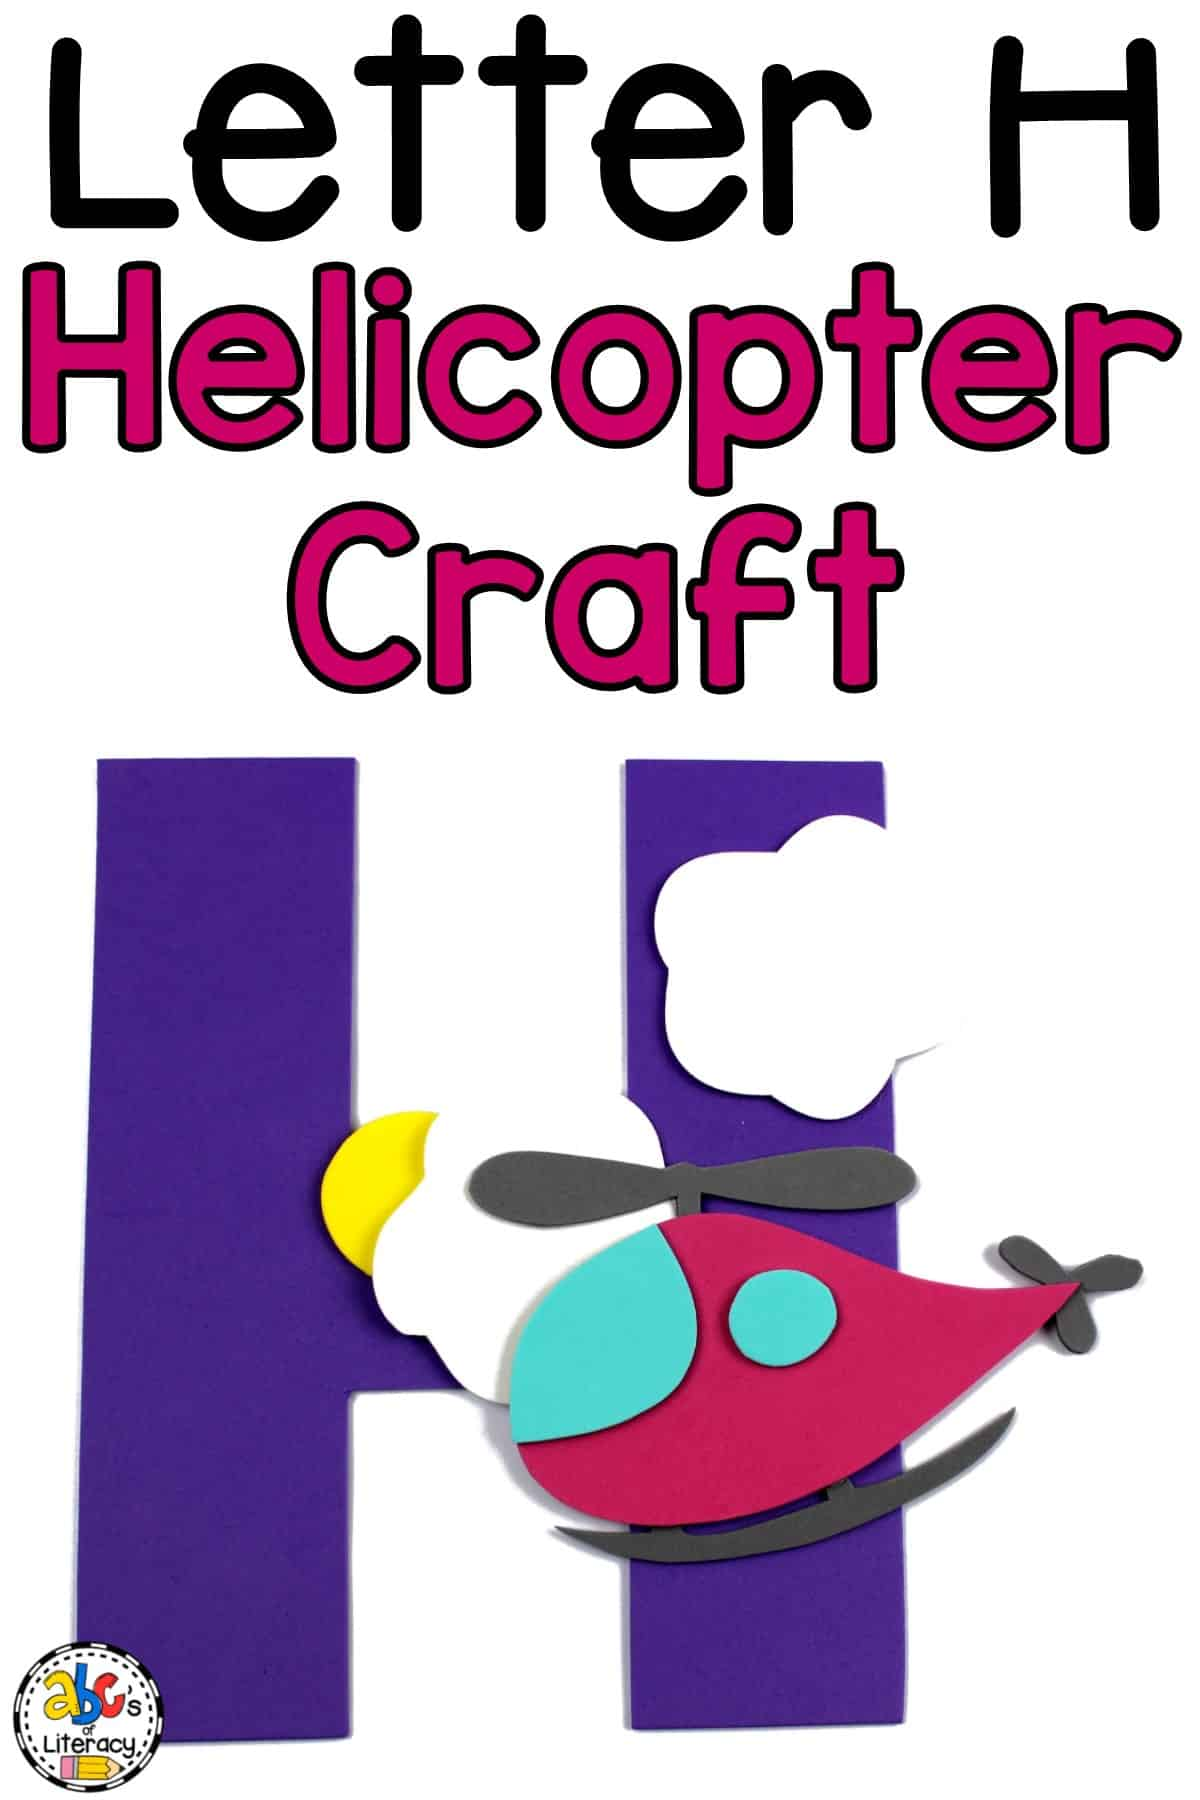 Letter H Craft, Letter H Helicopter Craft, Helicopter Craft, Letter of the Week Craft